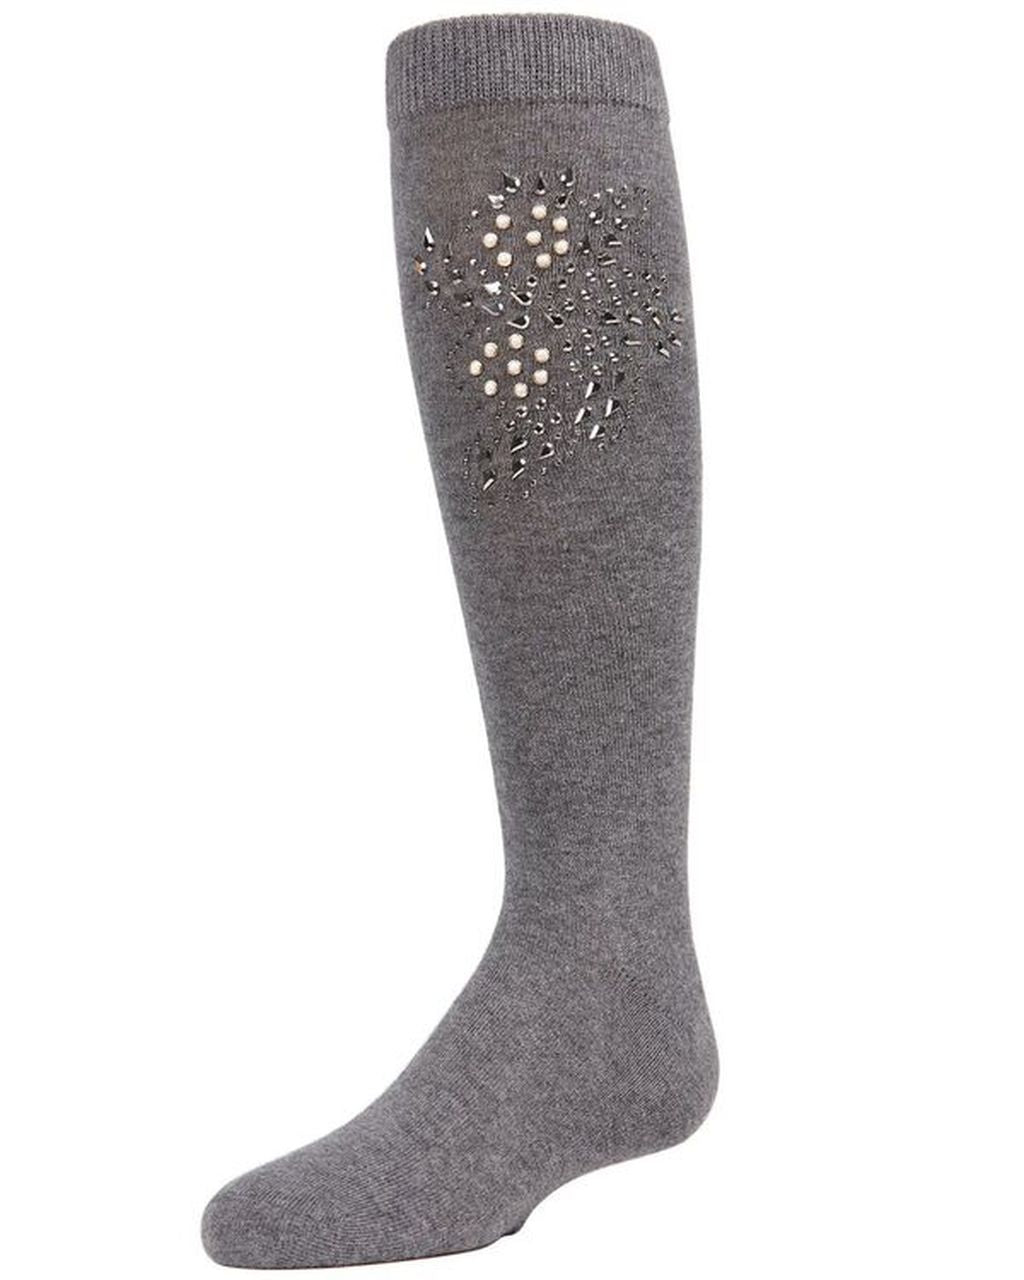 MEMOI JEWEL MOSAIC KNEE HIGH - Head Over Heels - Israel - MEMOI - מכף רגל ועד ראש